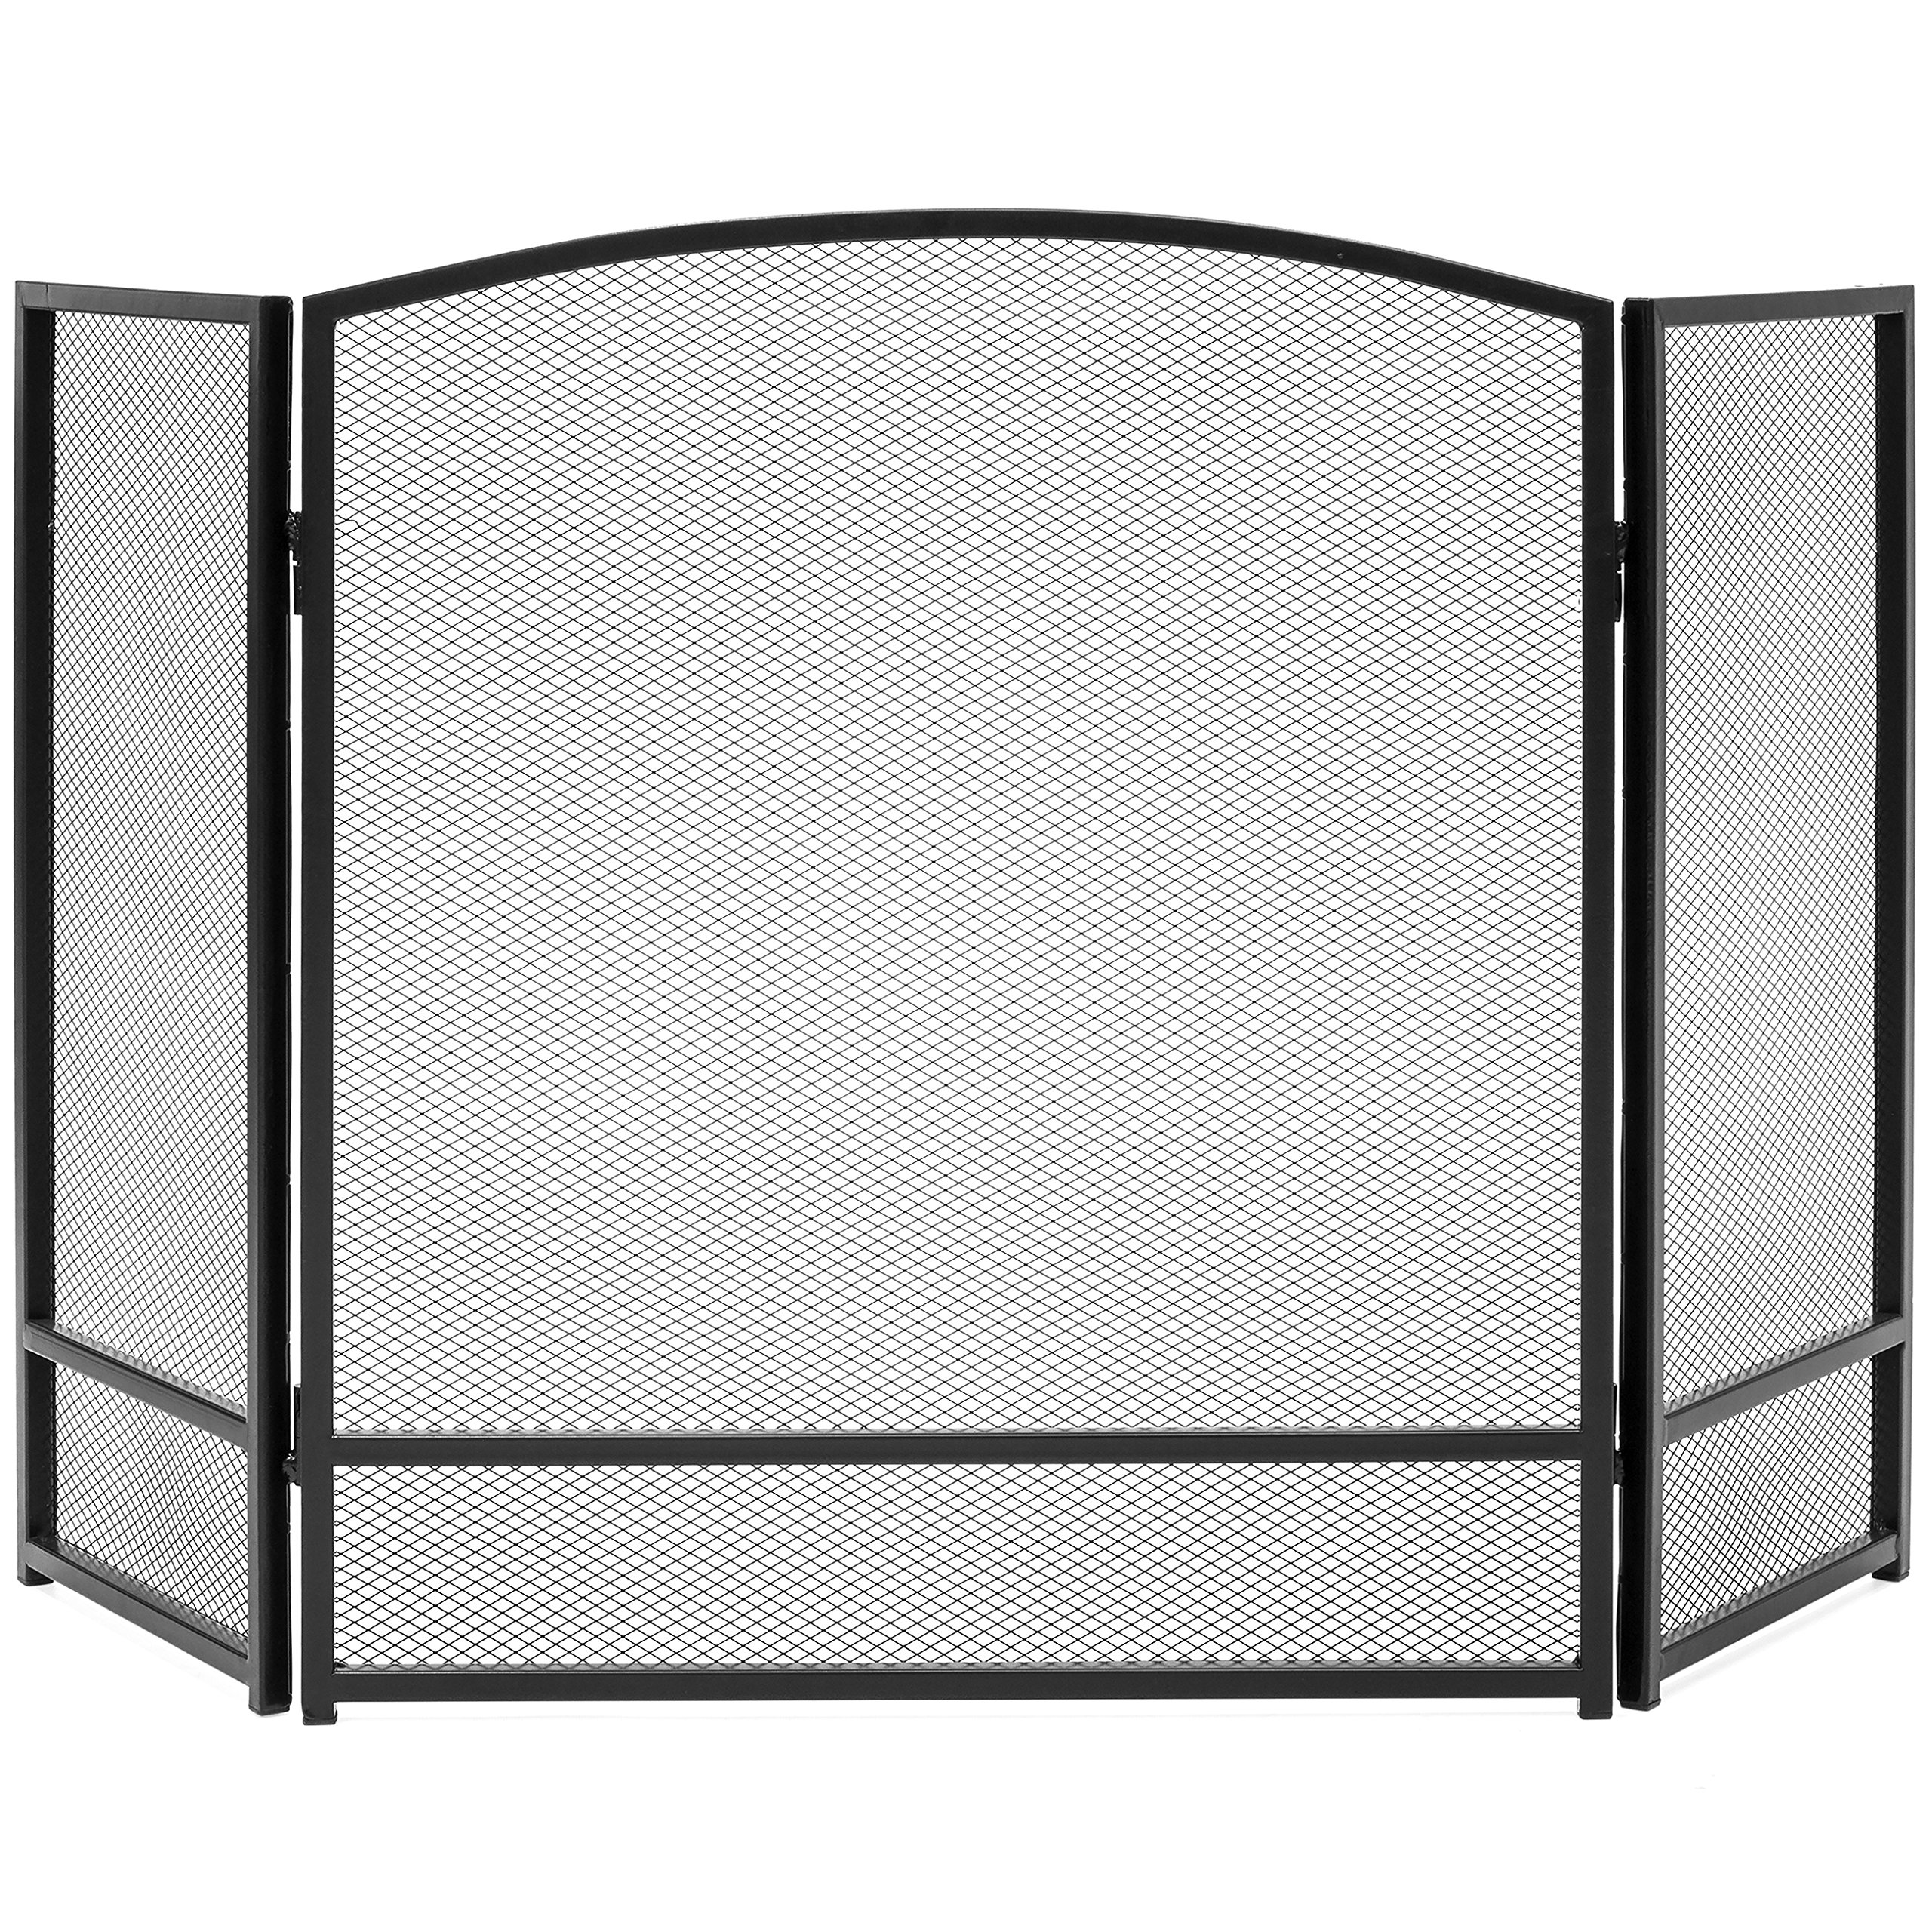 Best Choice Products 3-Panel Living Room Steel Mesh Simple Design Fireplace Screen Home Decor with Rustic Worn Finish, Black by Best Choice Products